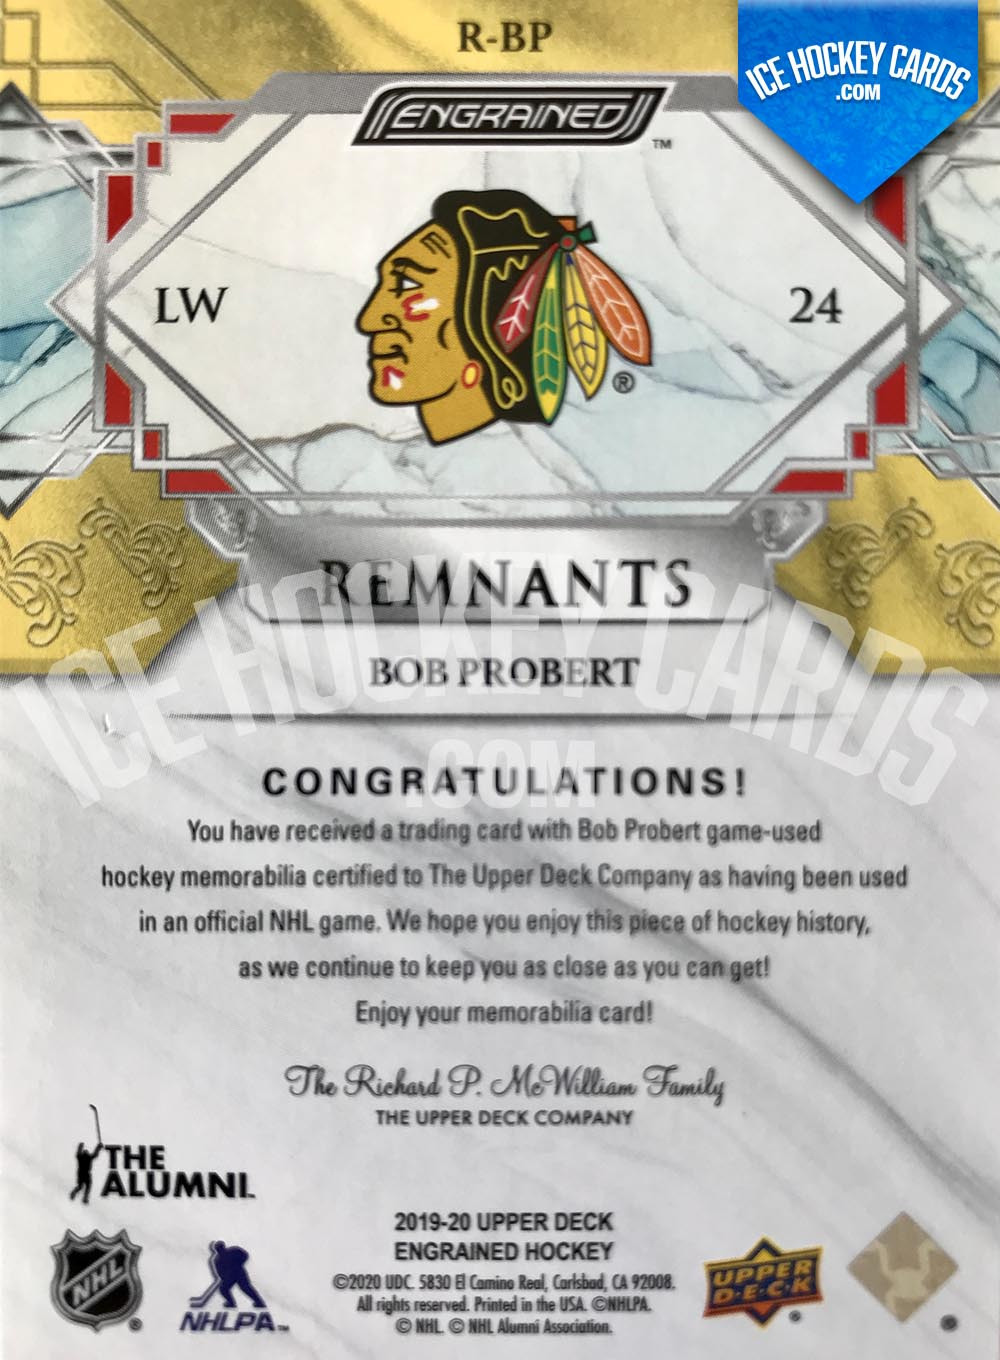 Upper Deck - Engrained 2019-20 - Bob Probert The Alumni Remnants Sticks Card # to 100 back